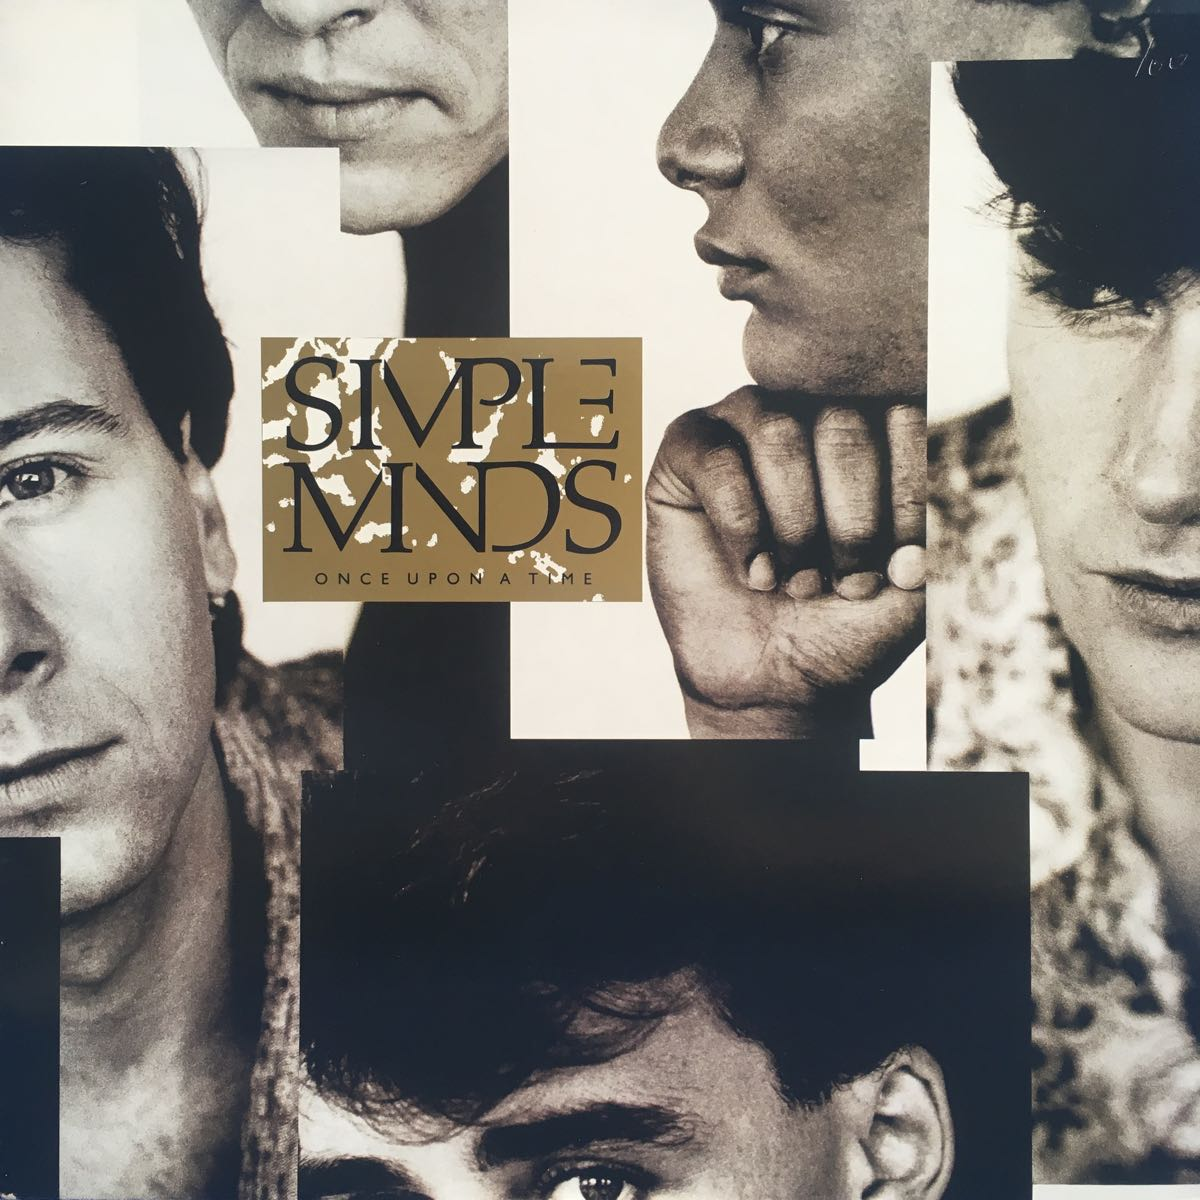 LP Simple Minds Once Upon a Time レコード 5点以上落札で送料無料_画像1